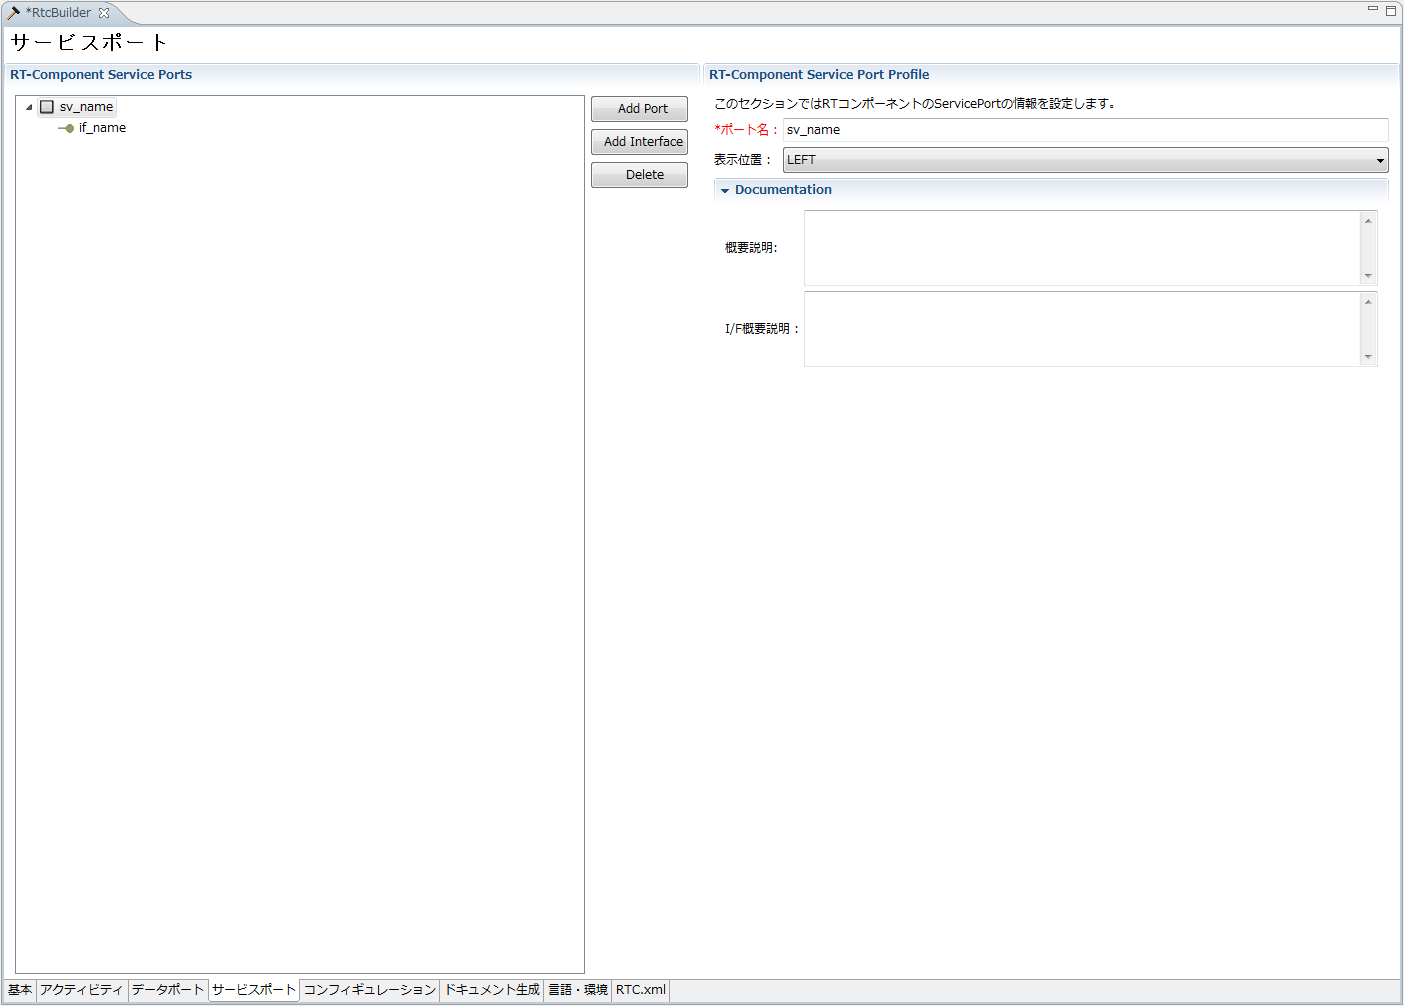 fig3-5InputServicePort_ja.png